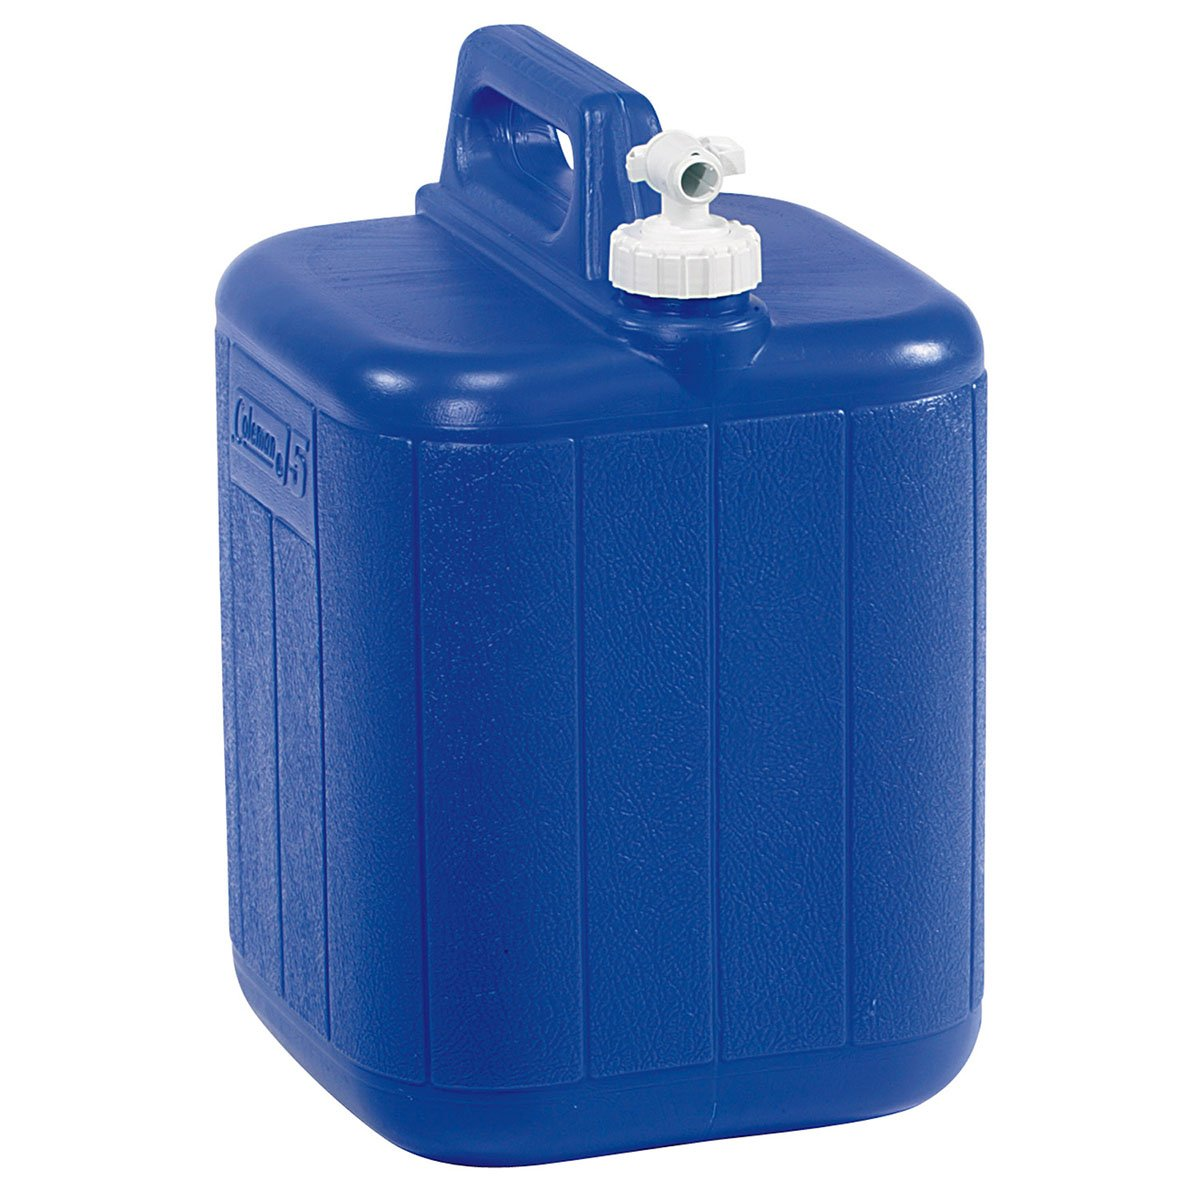 Coleman Jug with Water Carrier, 5 Gallons